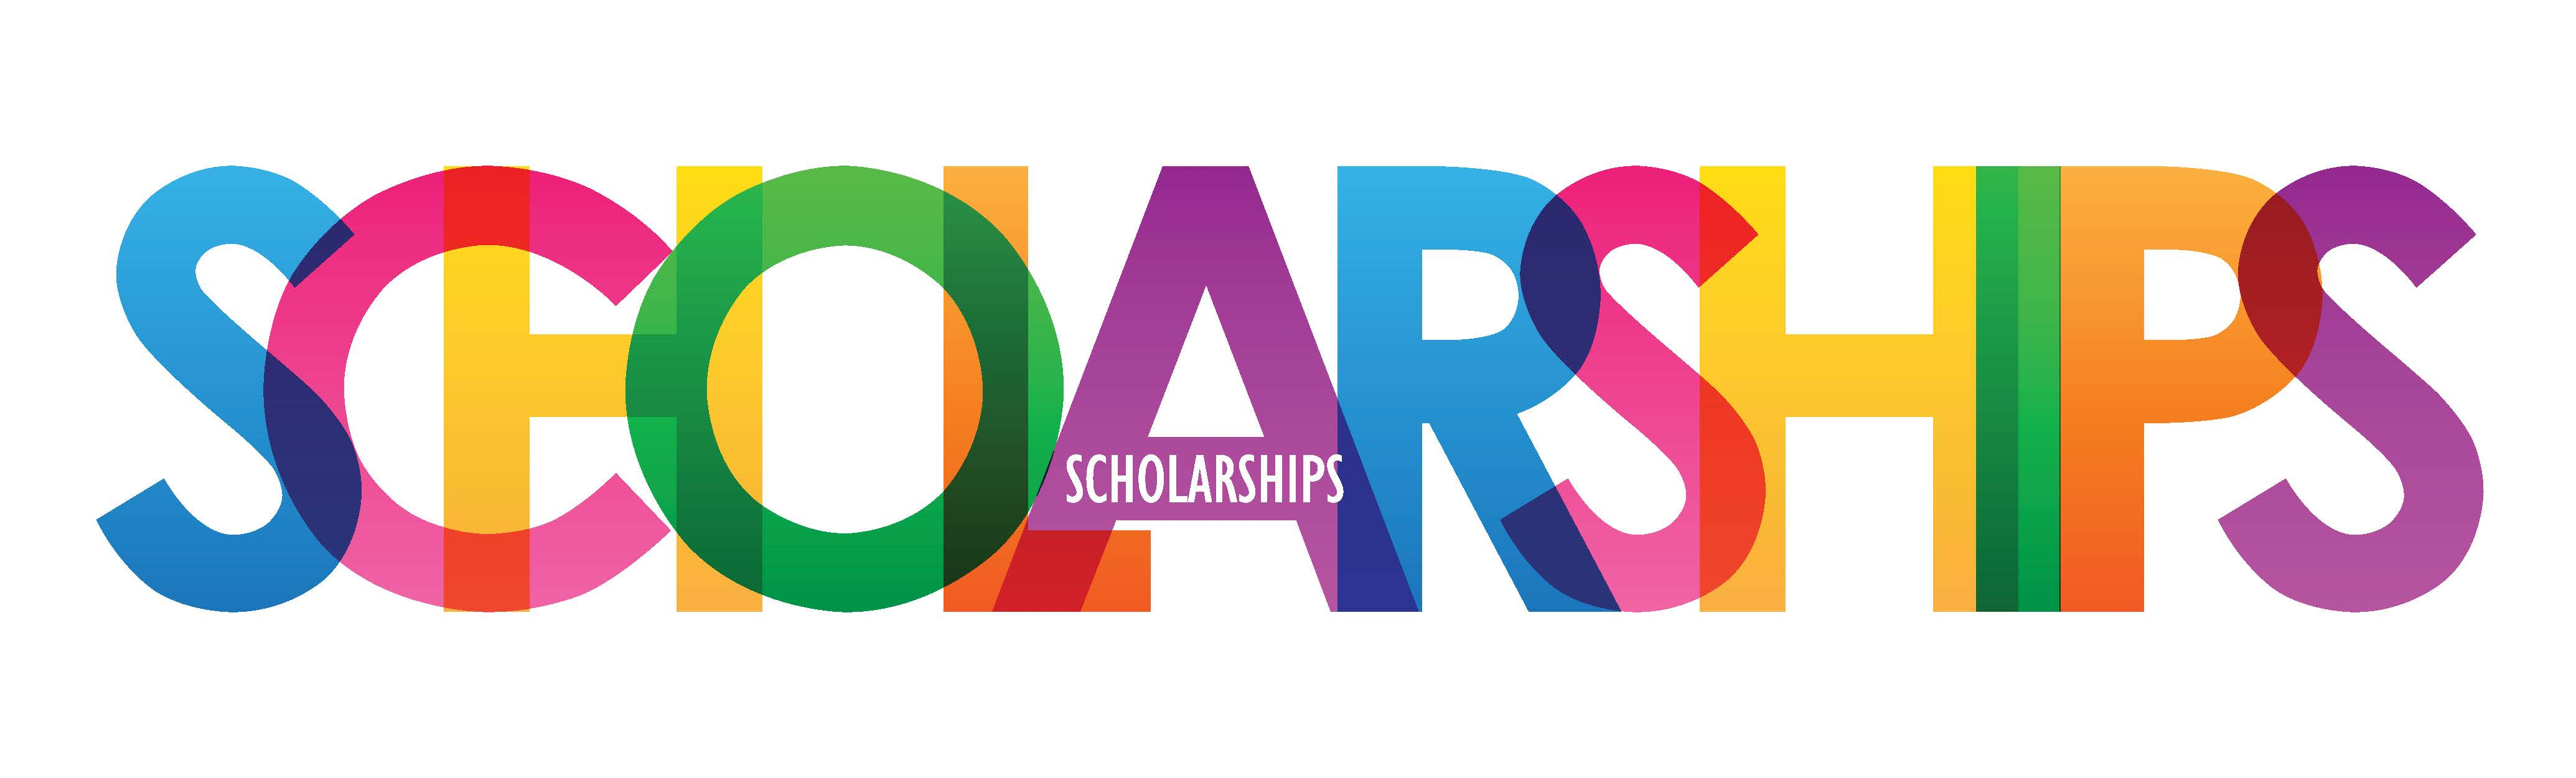 """colorful overlapping block letters reading """"Scholarships"""""""